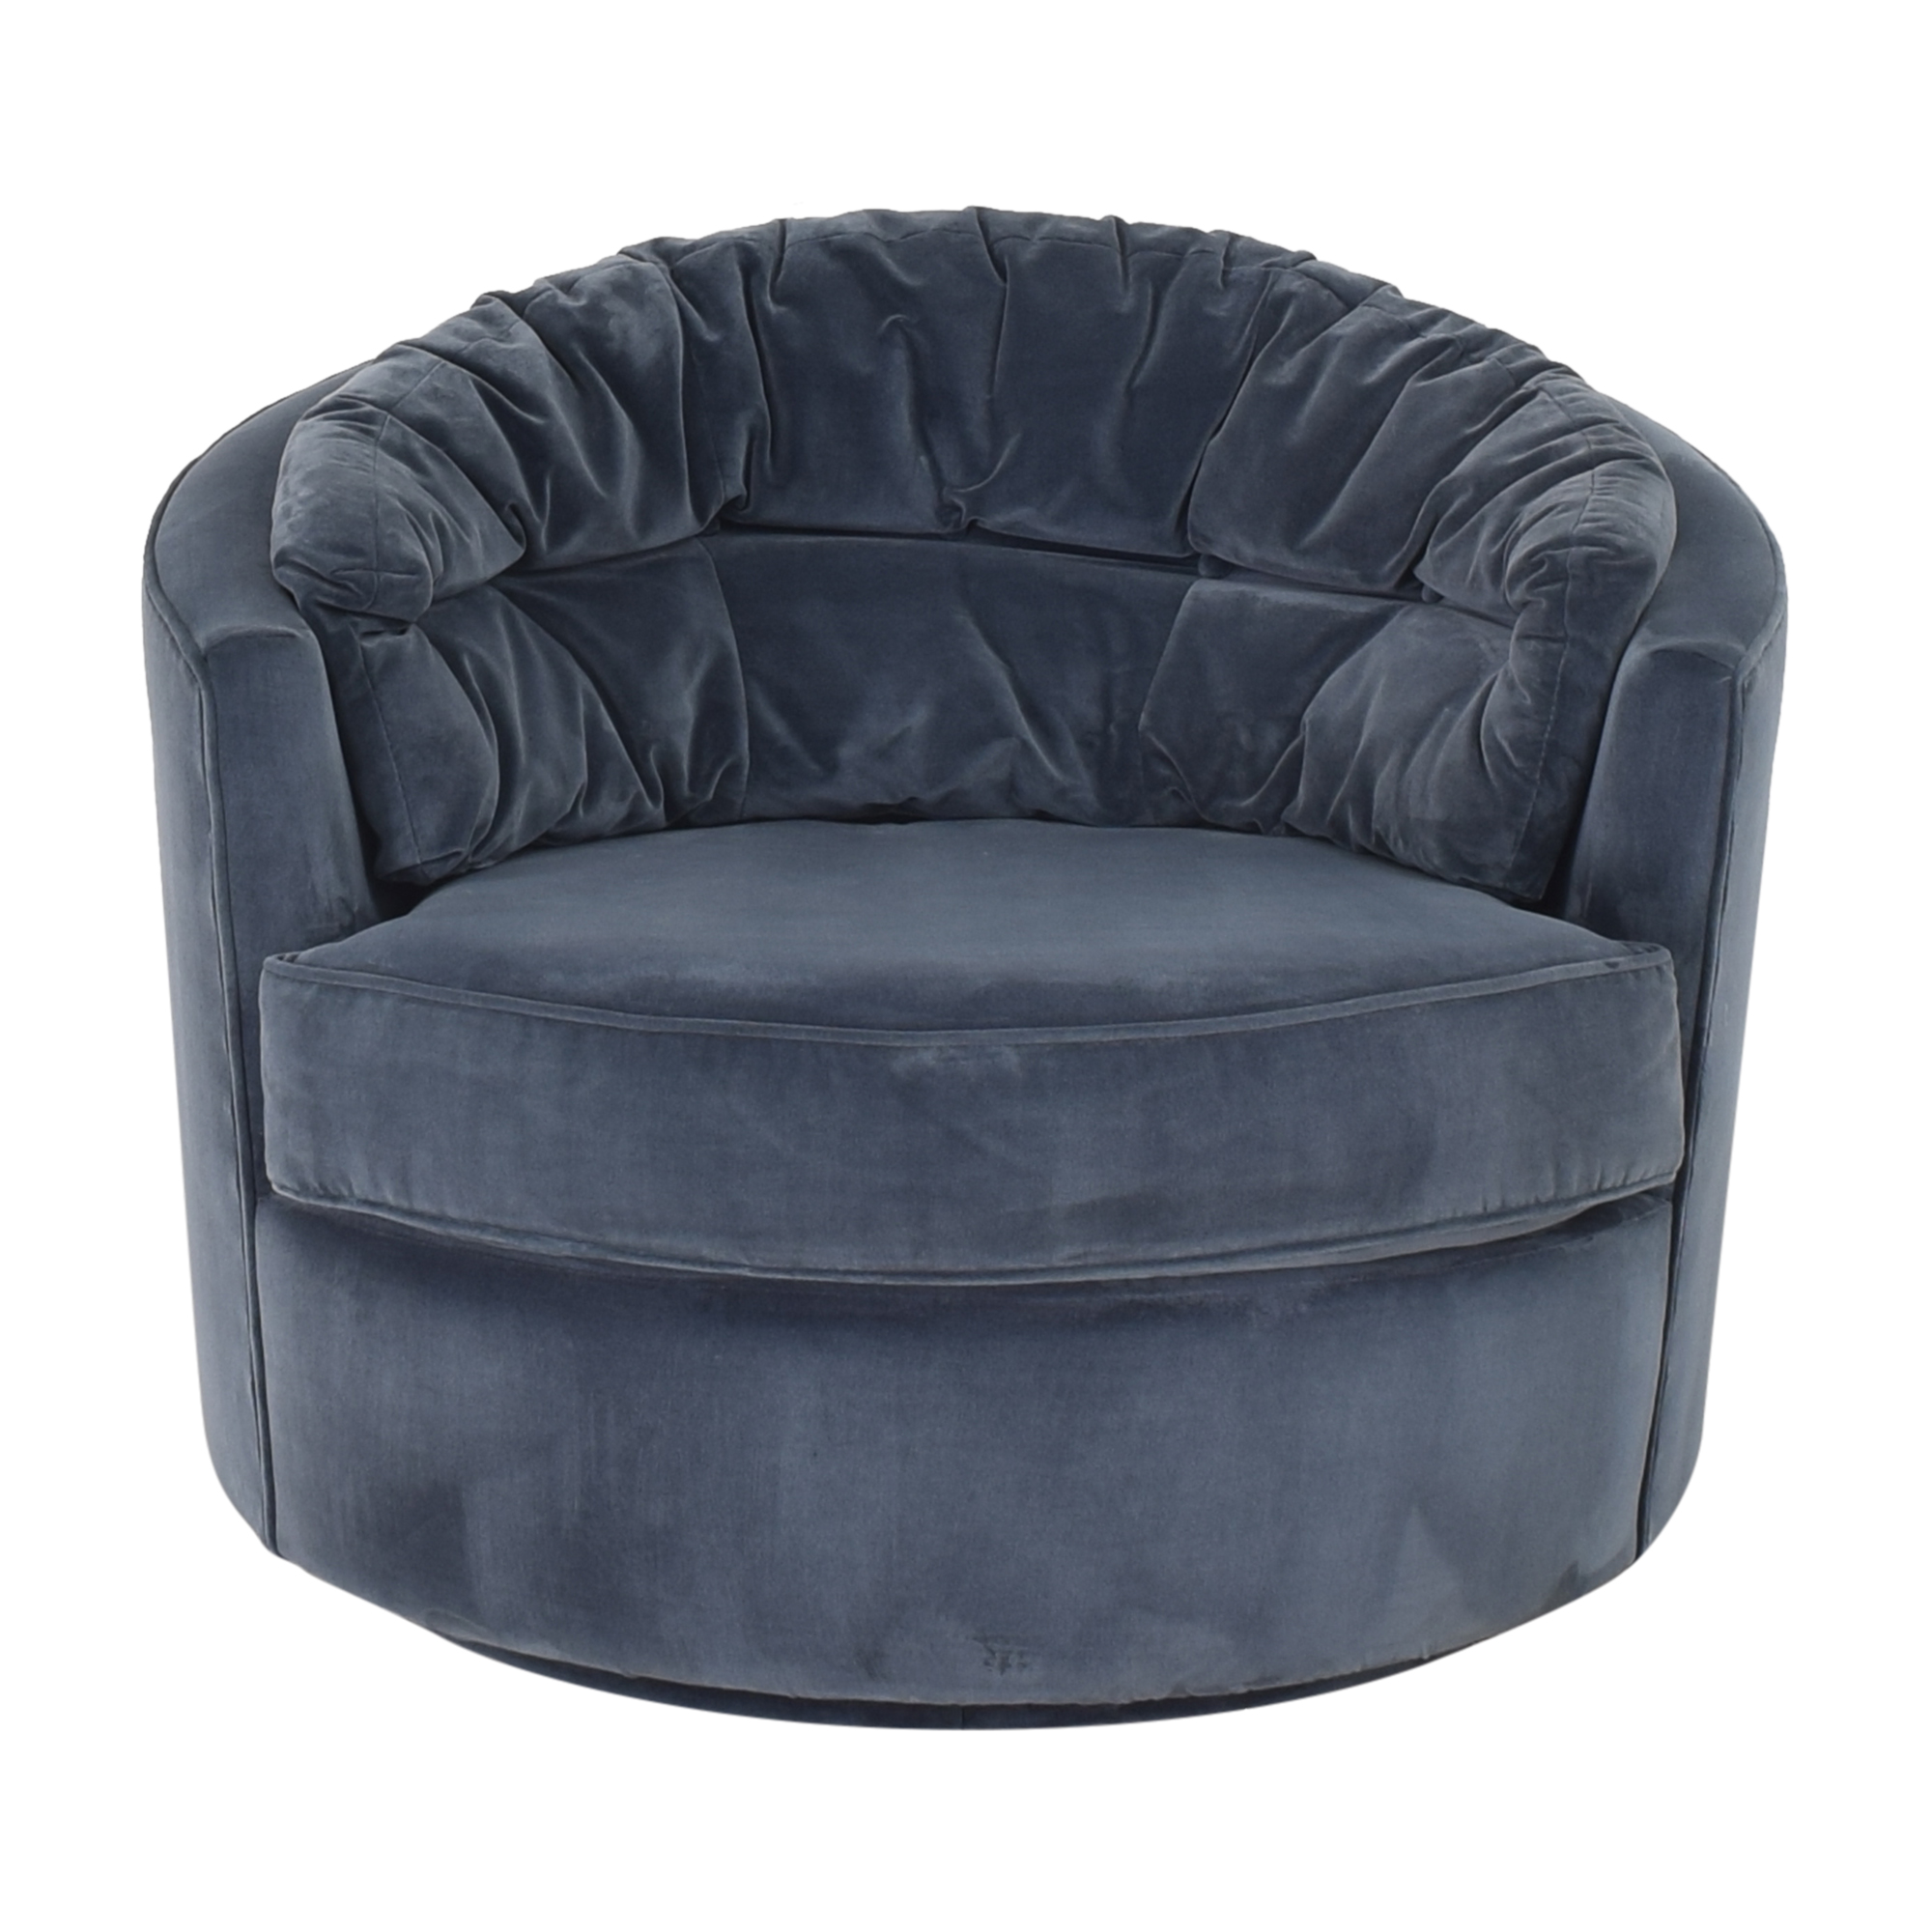 shop Eichholtz Recla Round Chair  Eichholtz Accent Chairs